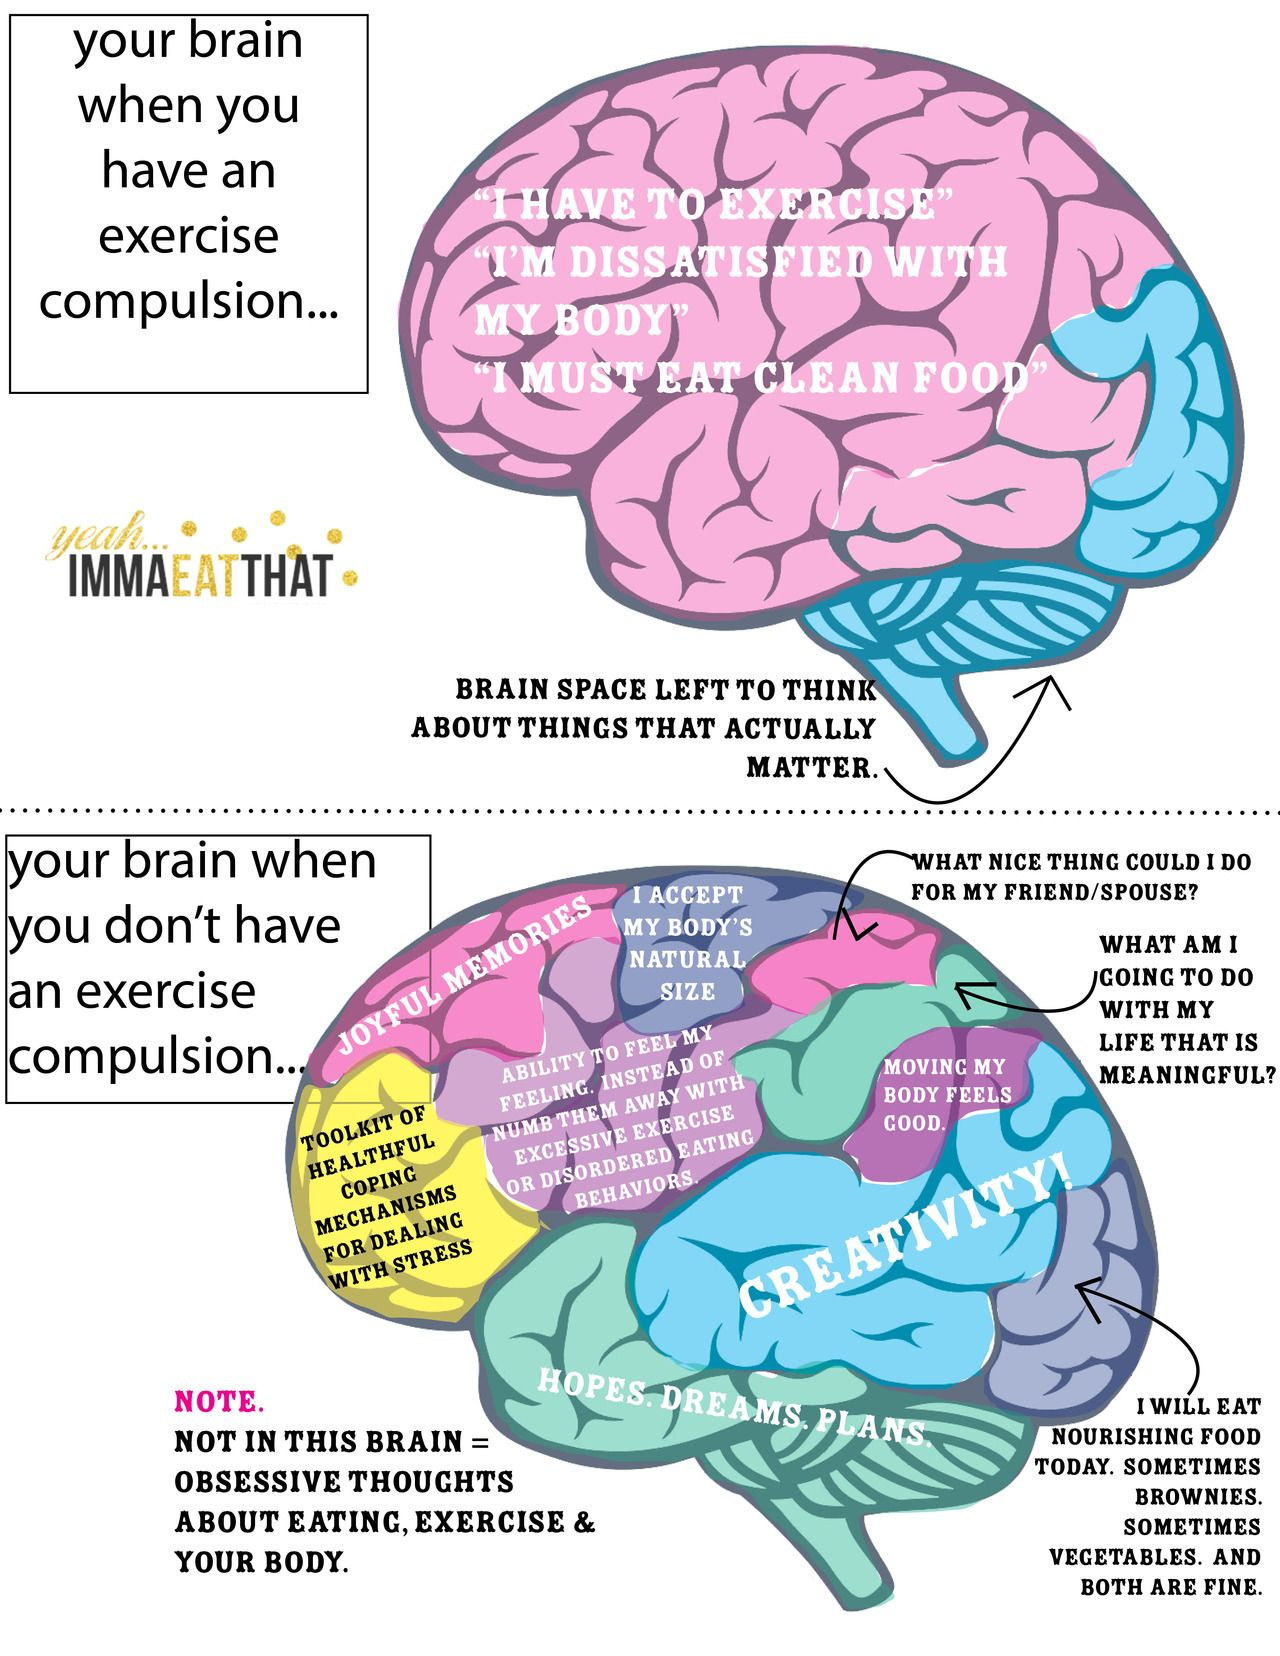 Your brain when you have an exercise obsession vs  your brain when